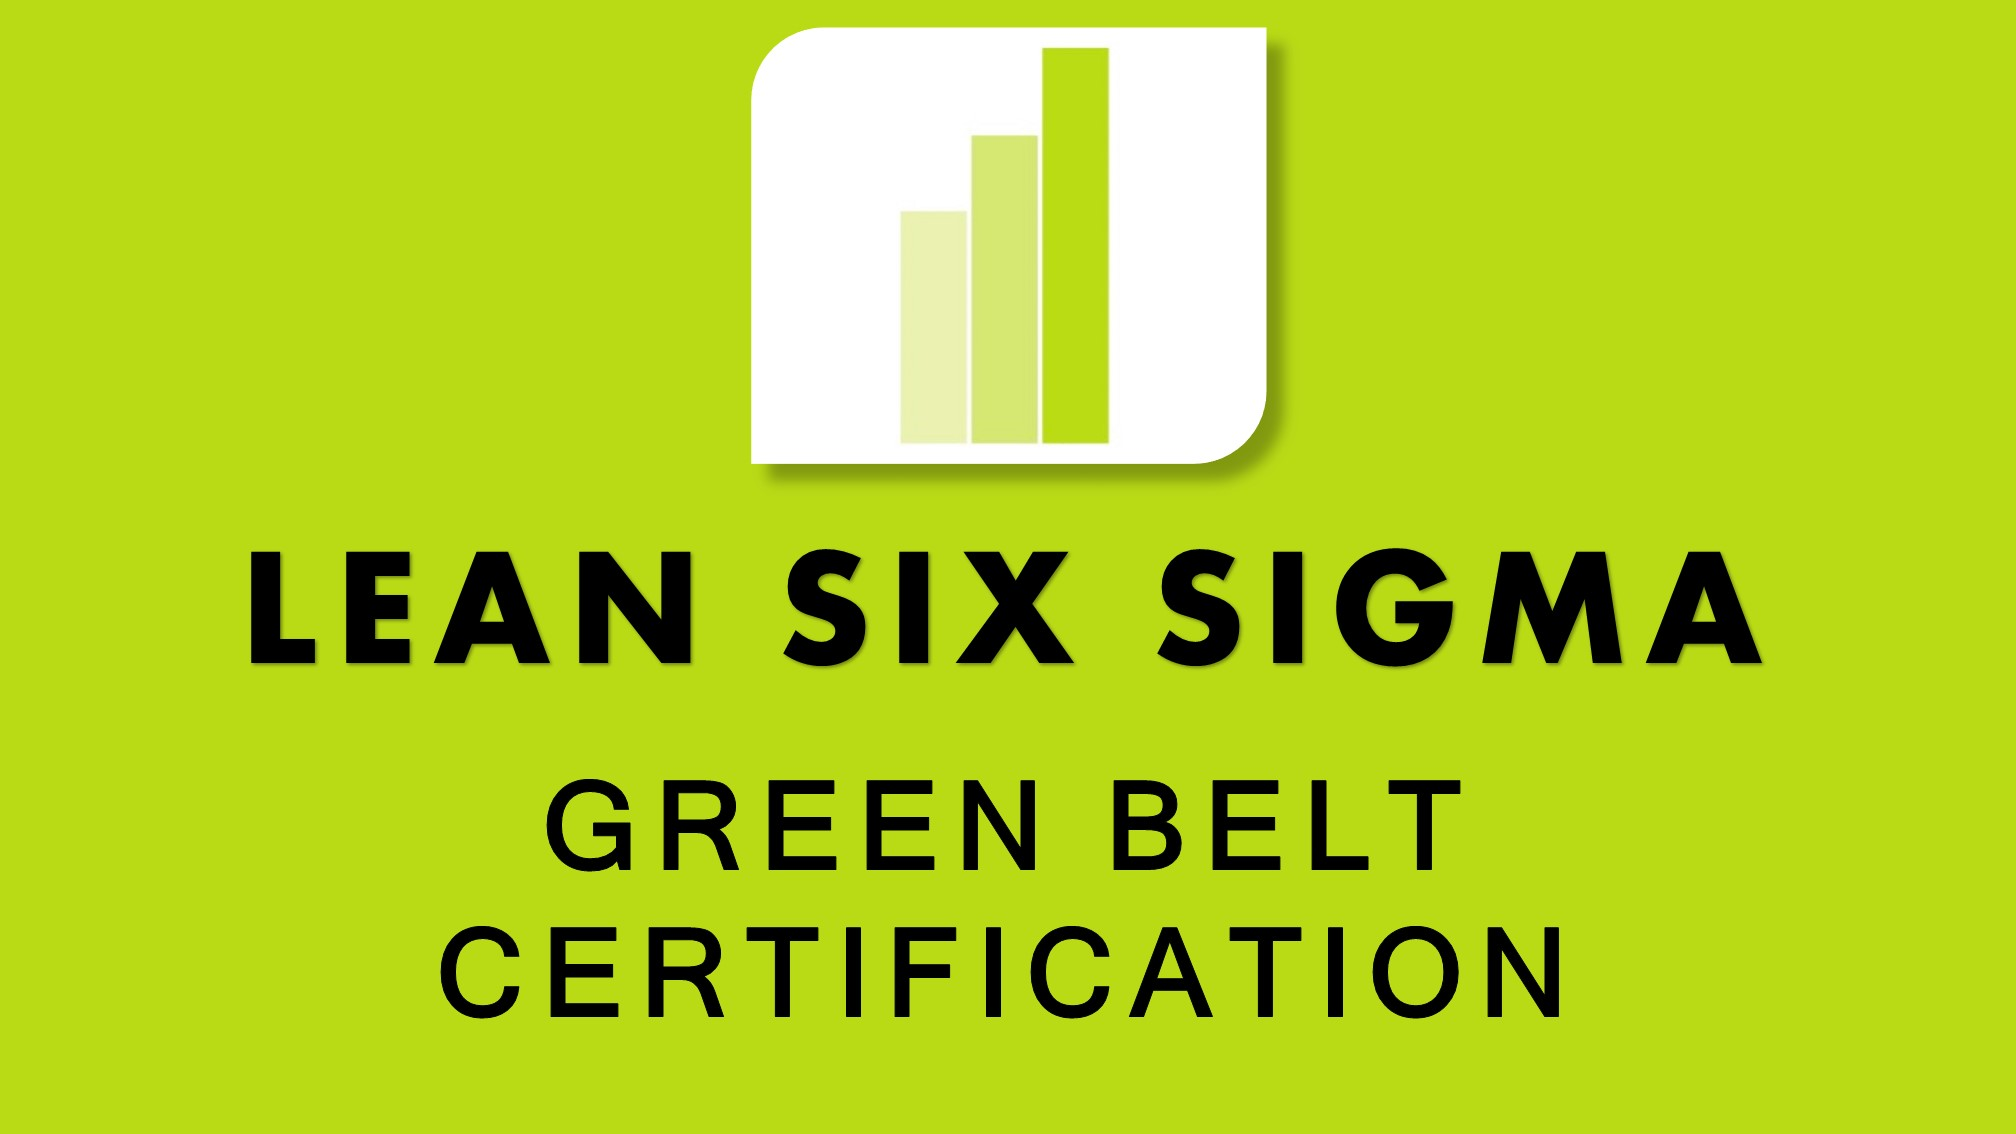 Lean six sigma green belt training course and certification lean six sigma green belt training course and certification australia two consulting xflitez Images